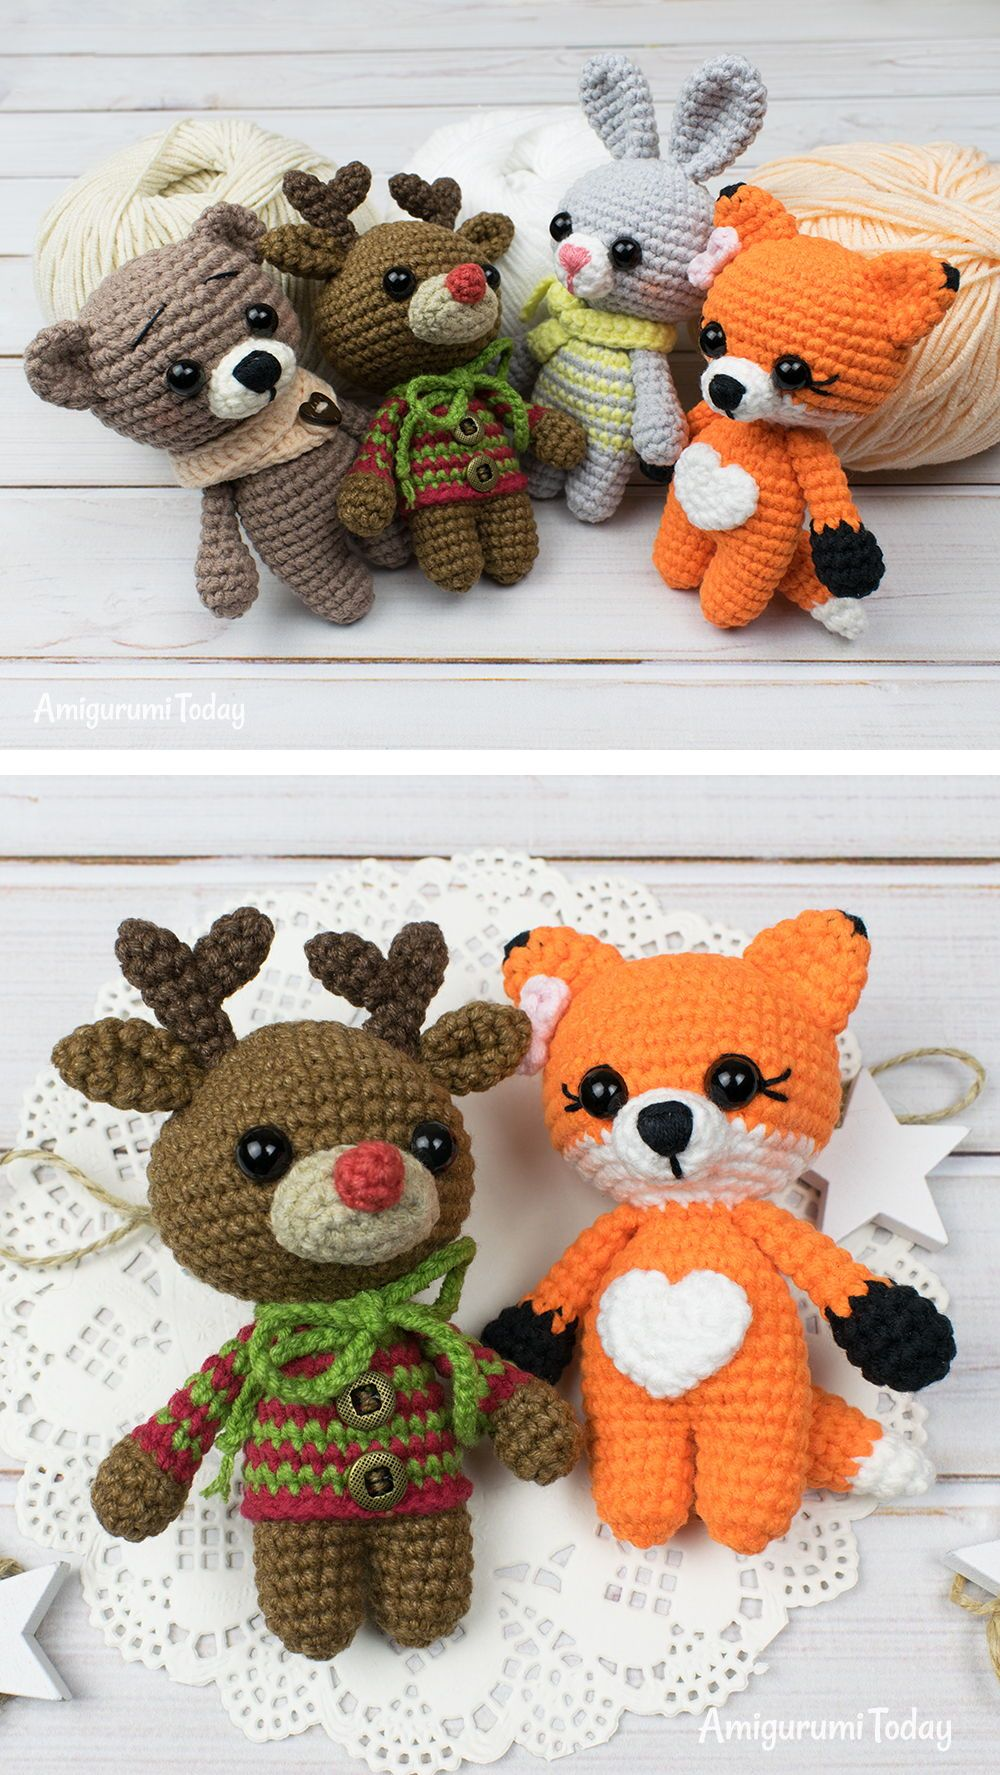 Amigurumi Today - Free amigurumi patterns and amigurumi tutorials | 1775x1000